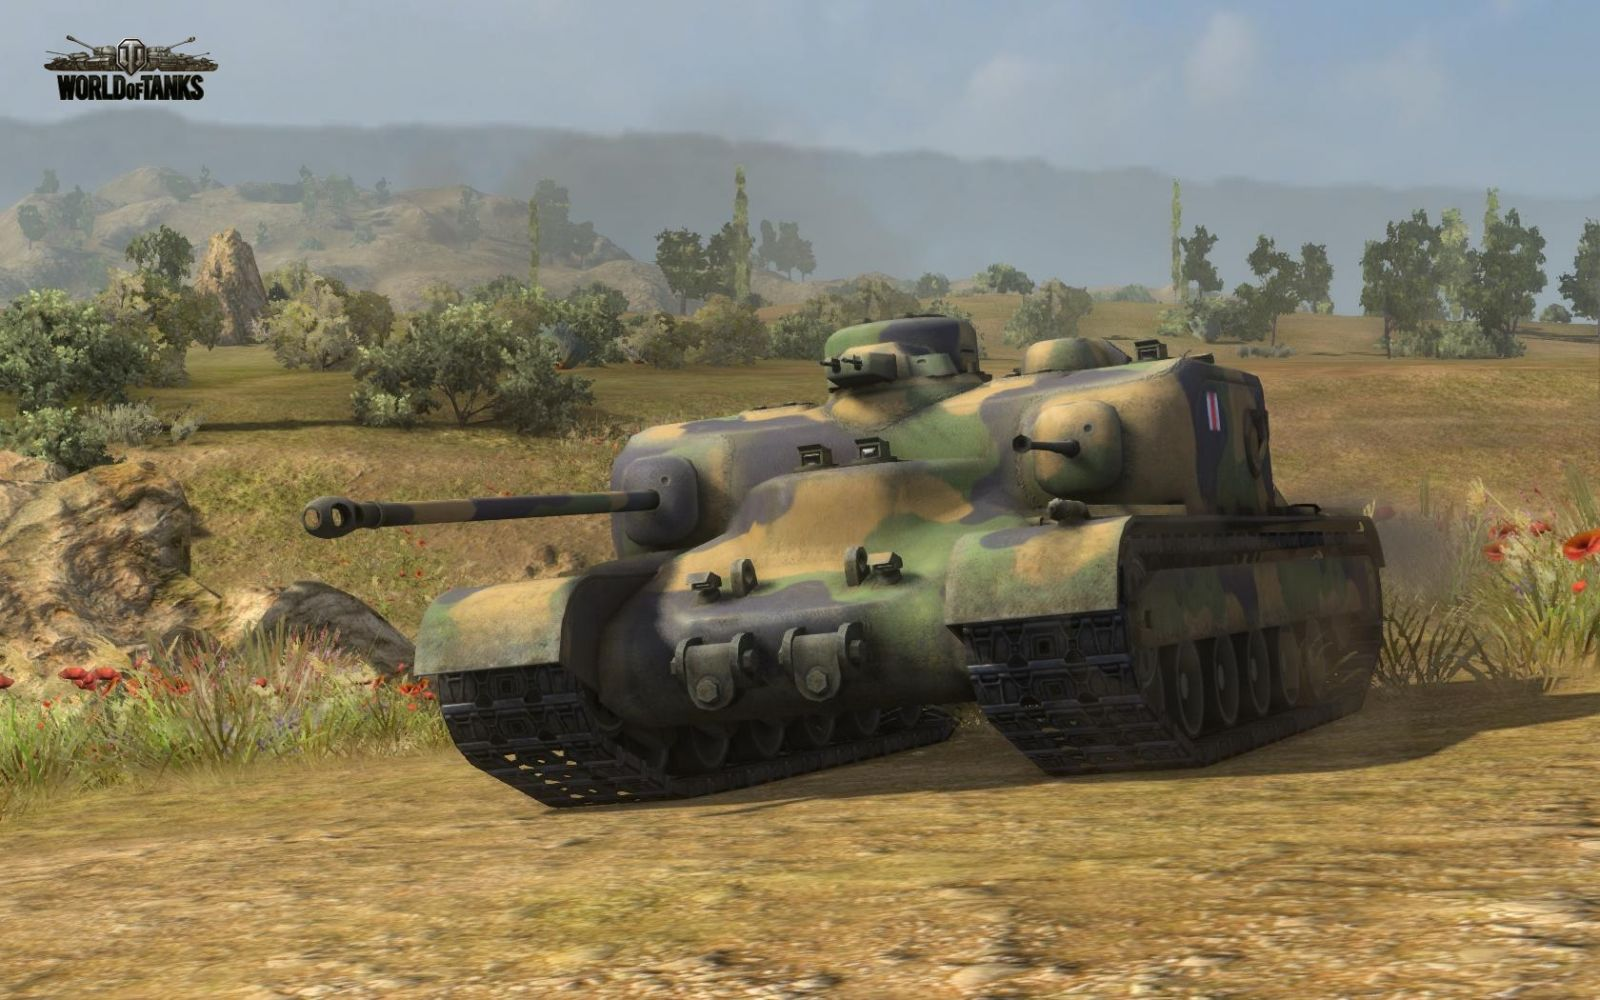 wot_screens_tanks_britain_at_7_image_01